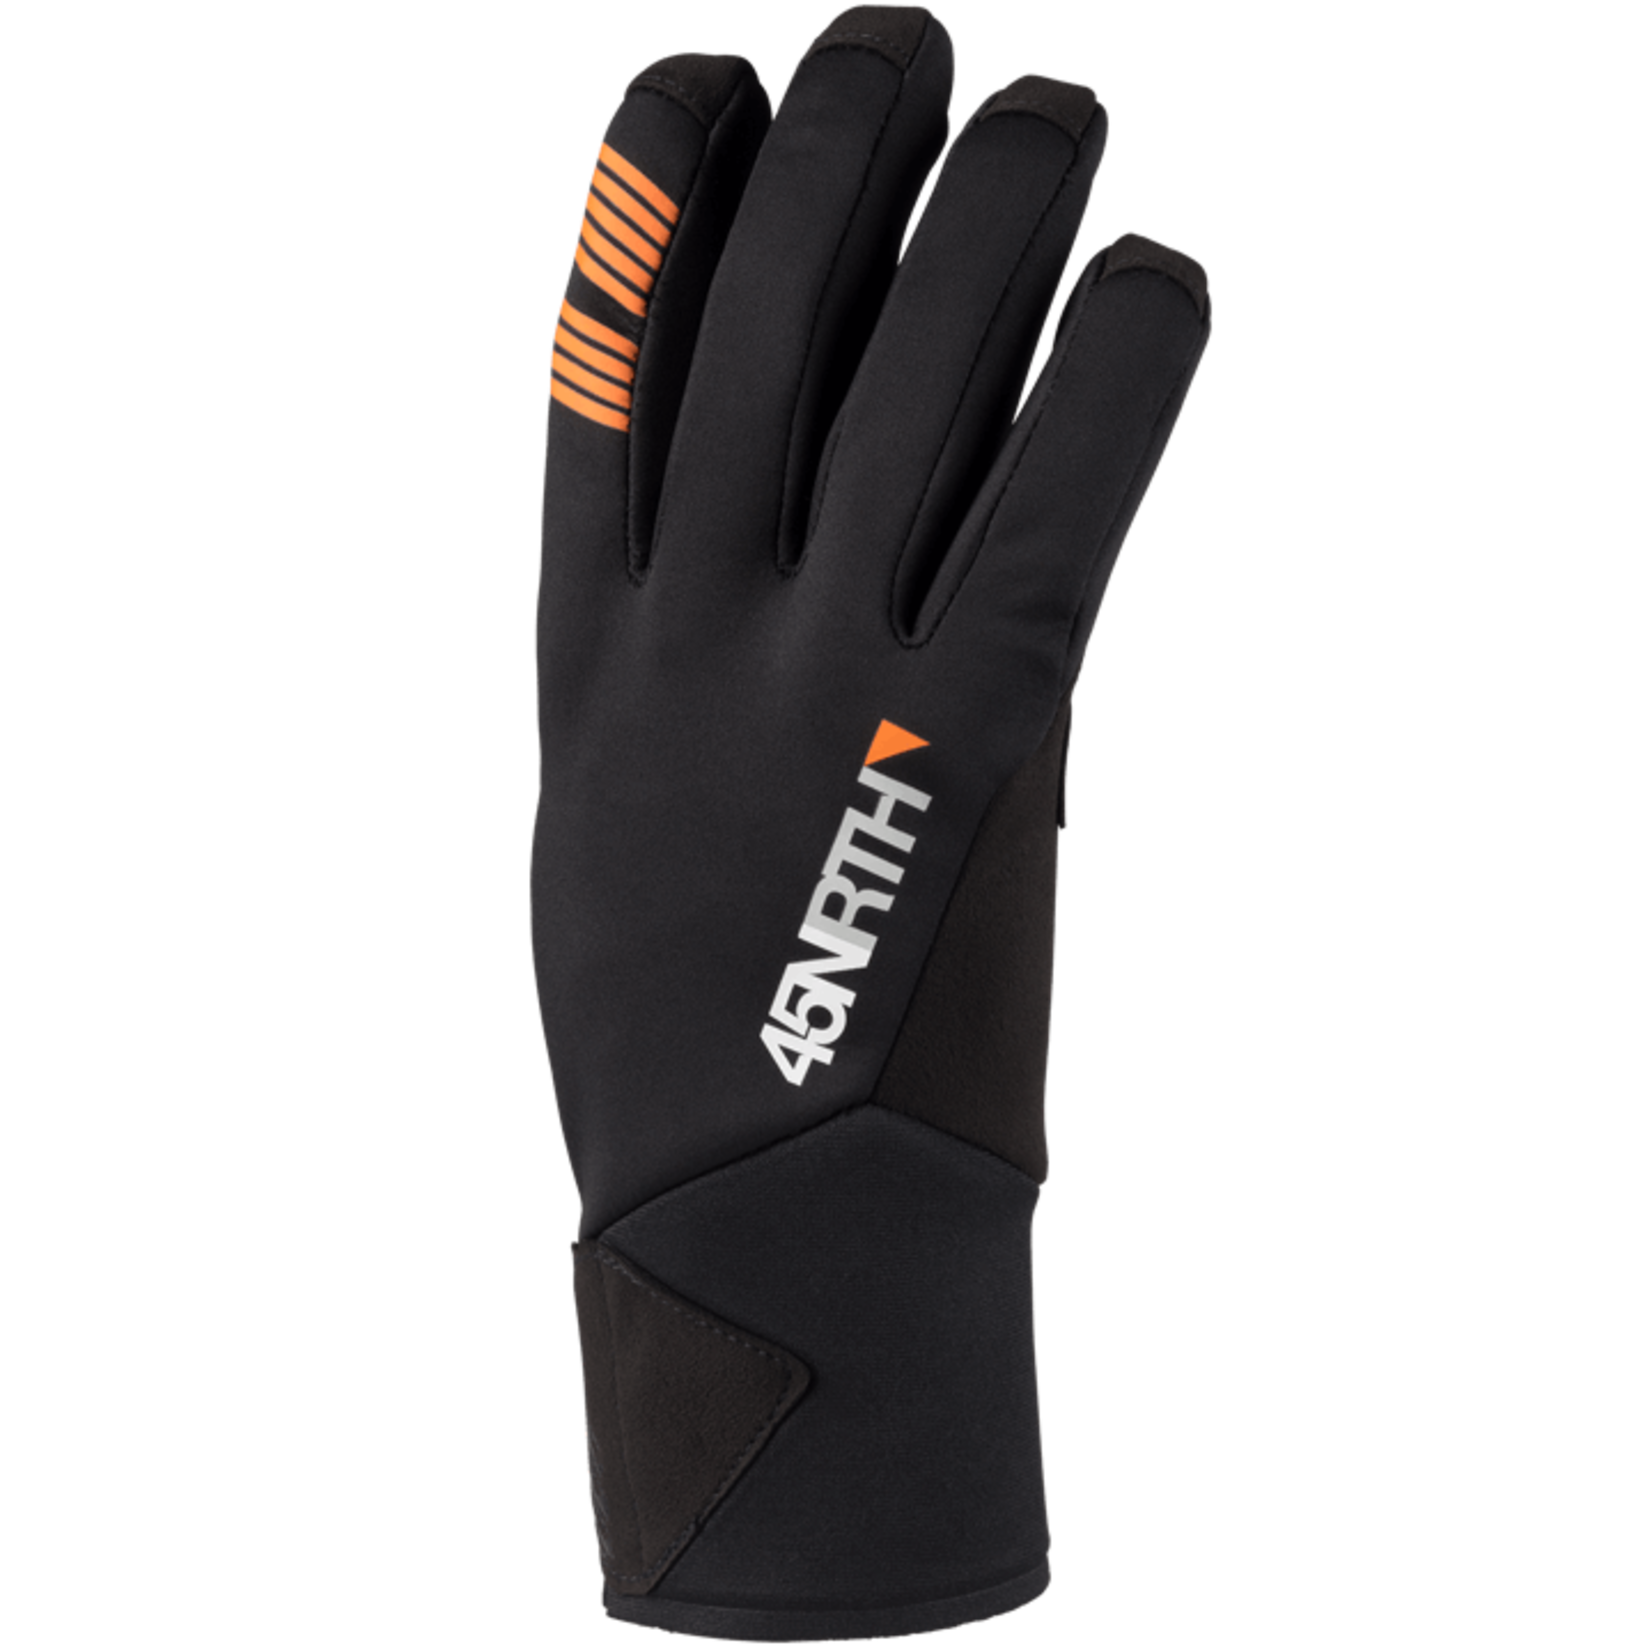 45 North 45NRTH Nokken Cool Weather Cycling Glove